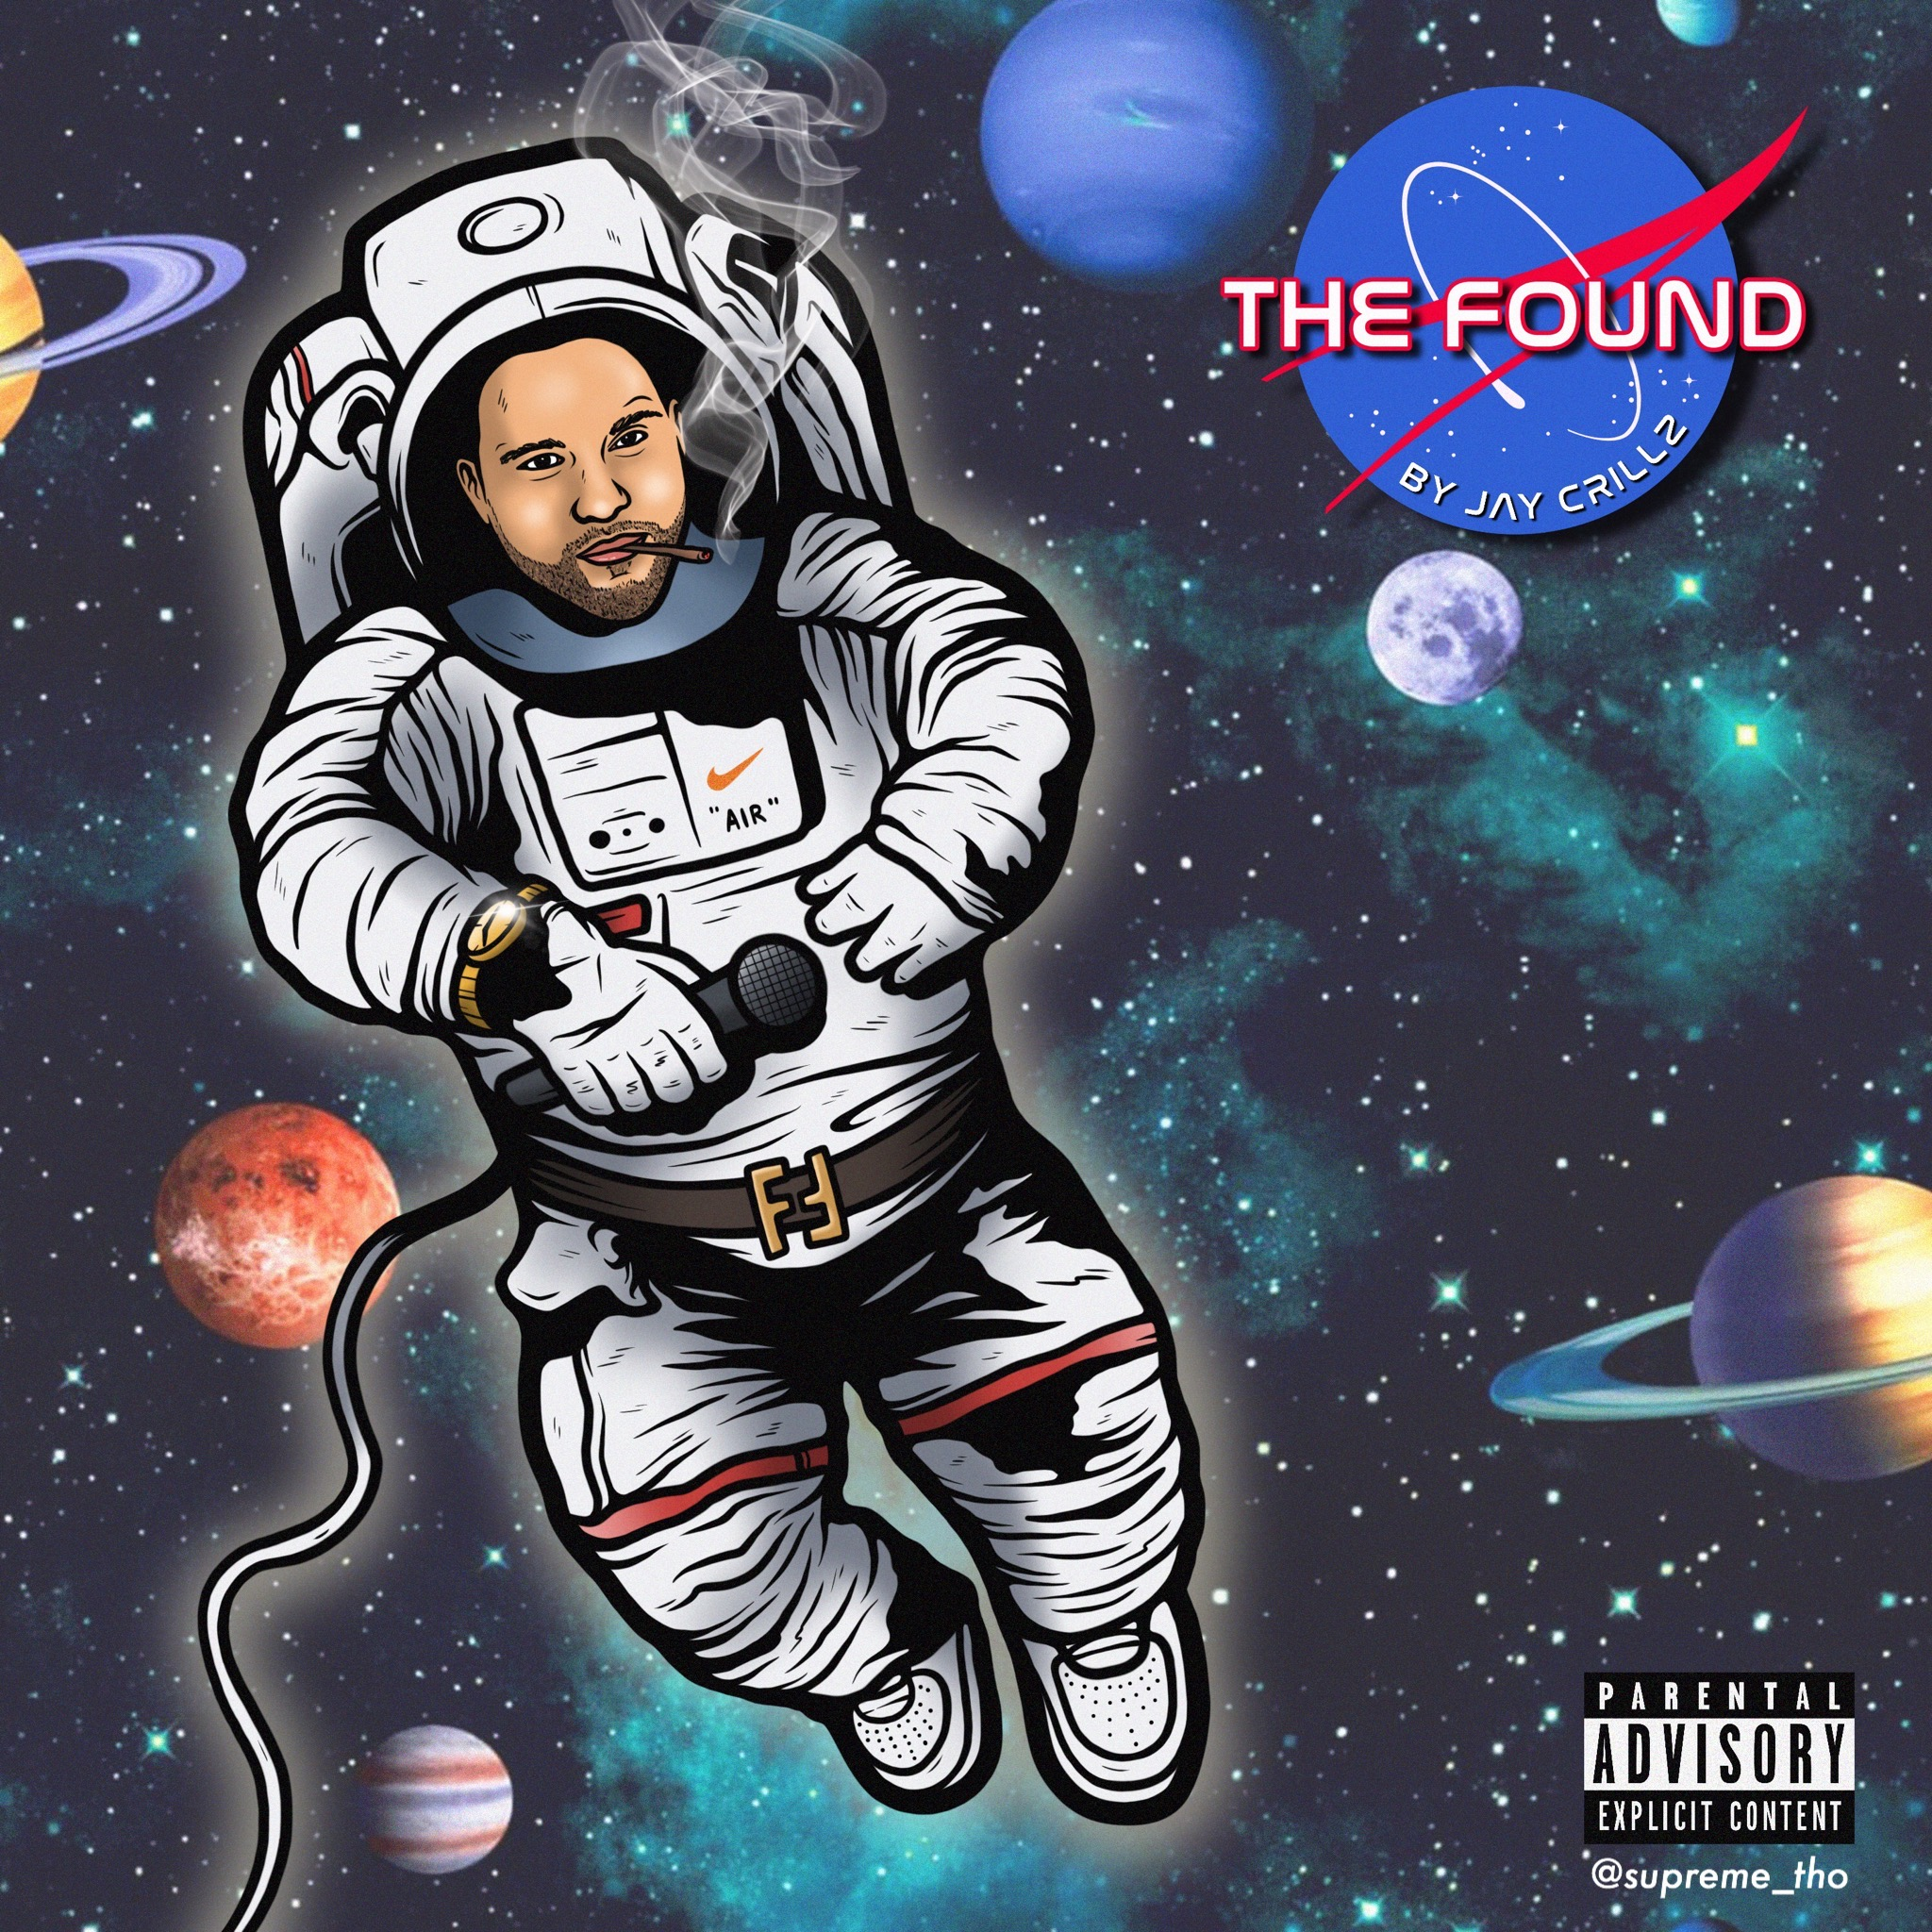 THE FOUND COVER